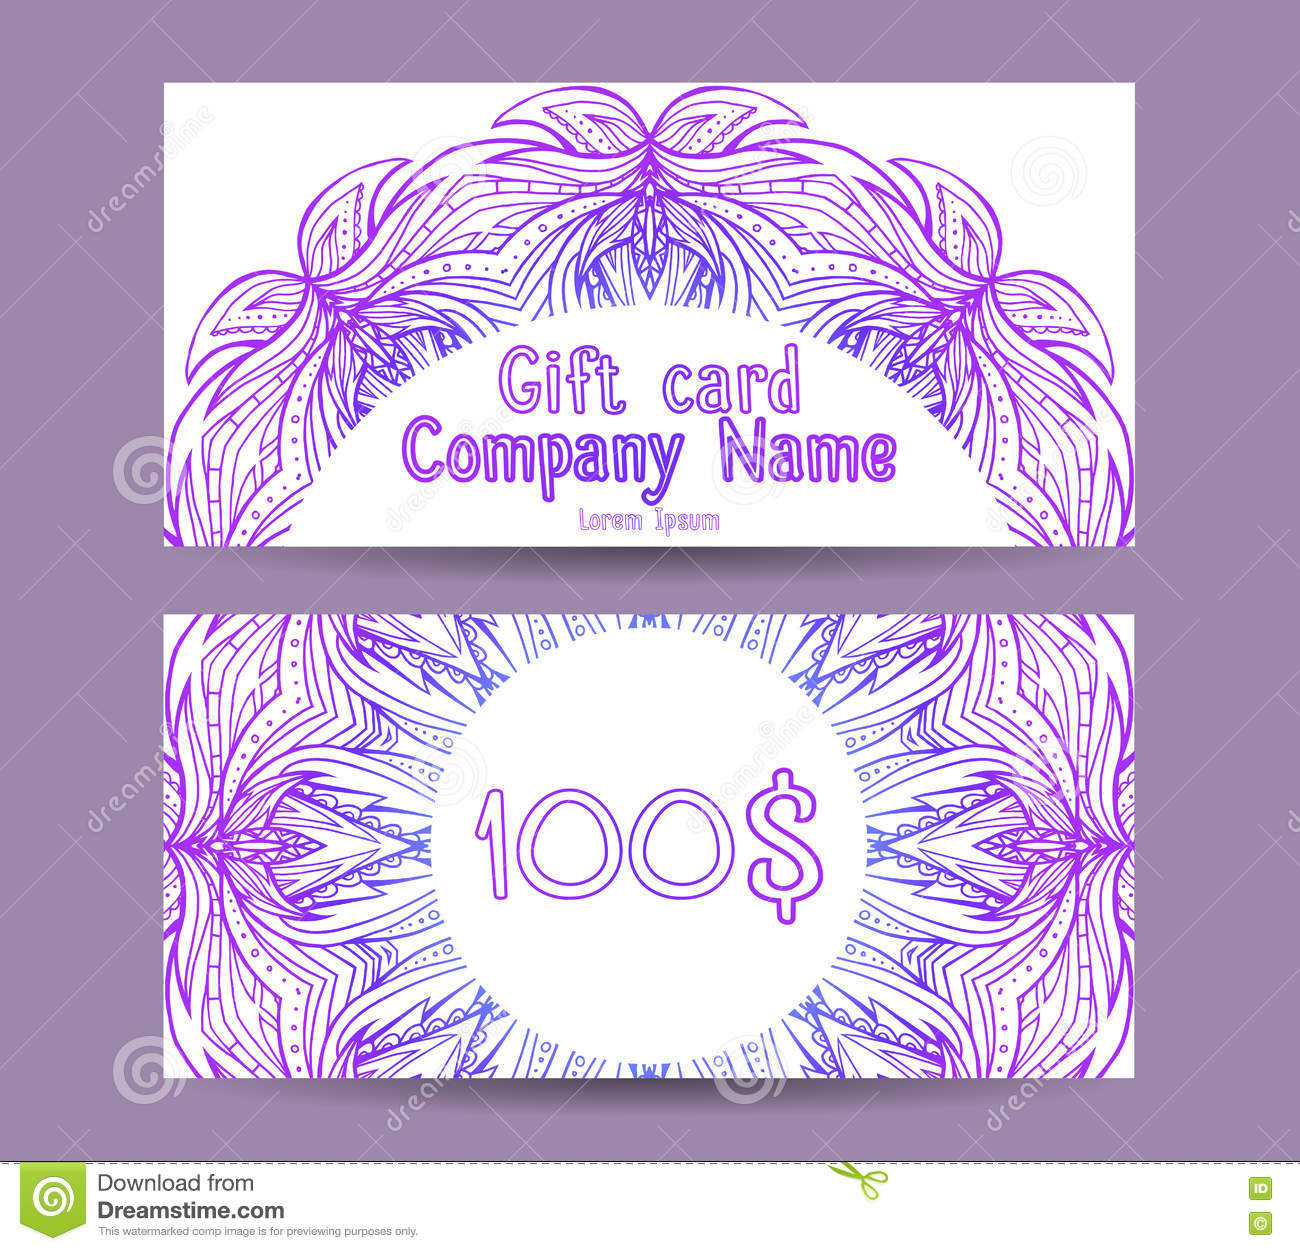 yoga gift certificate template free - template gift certificate for yoga studio spa center